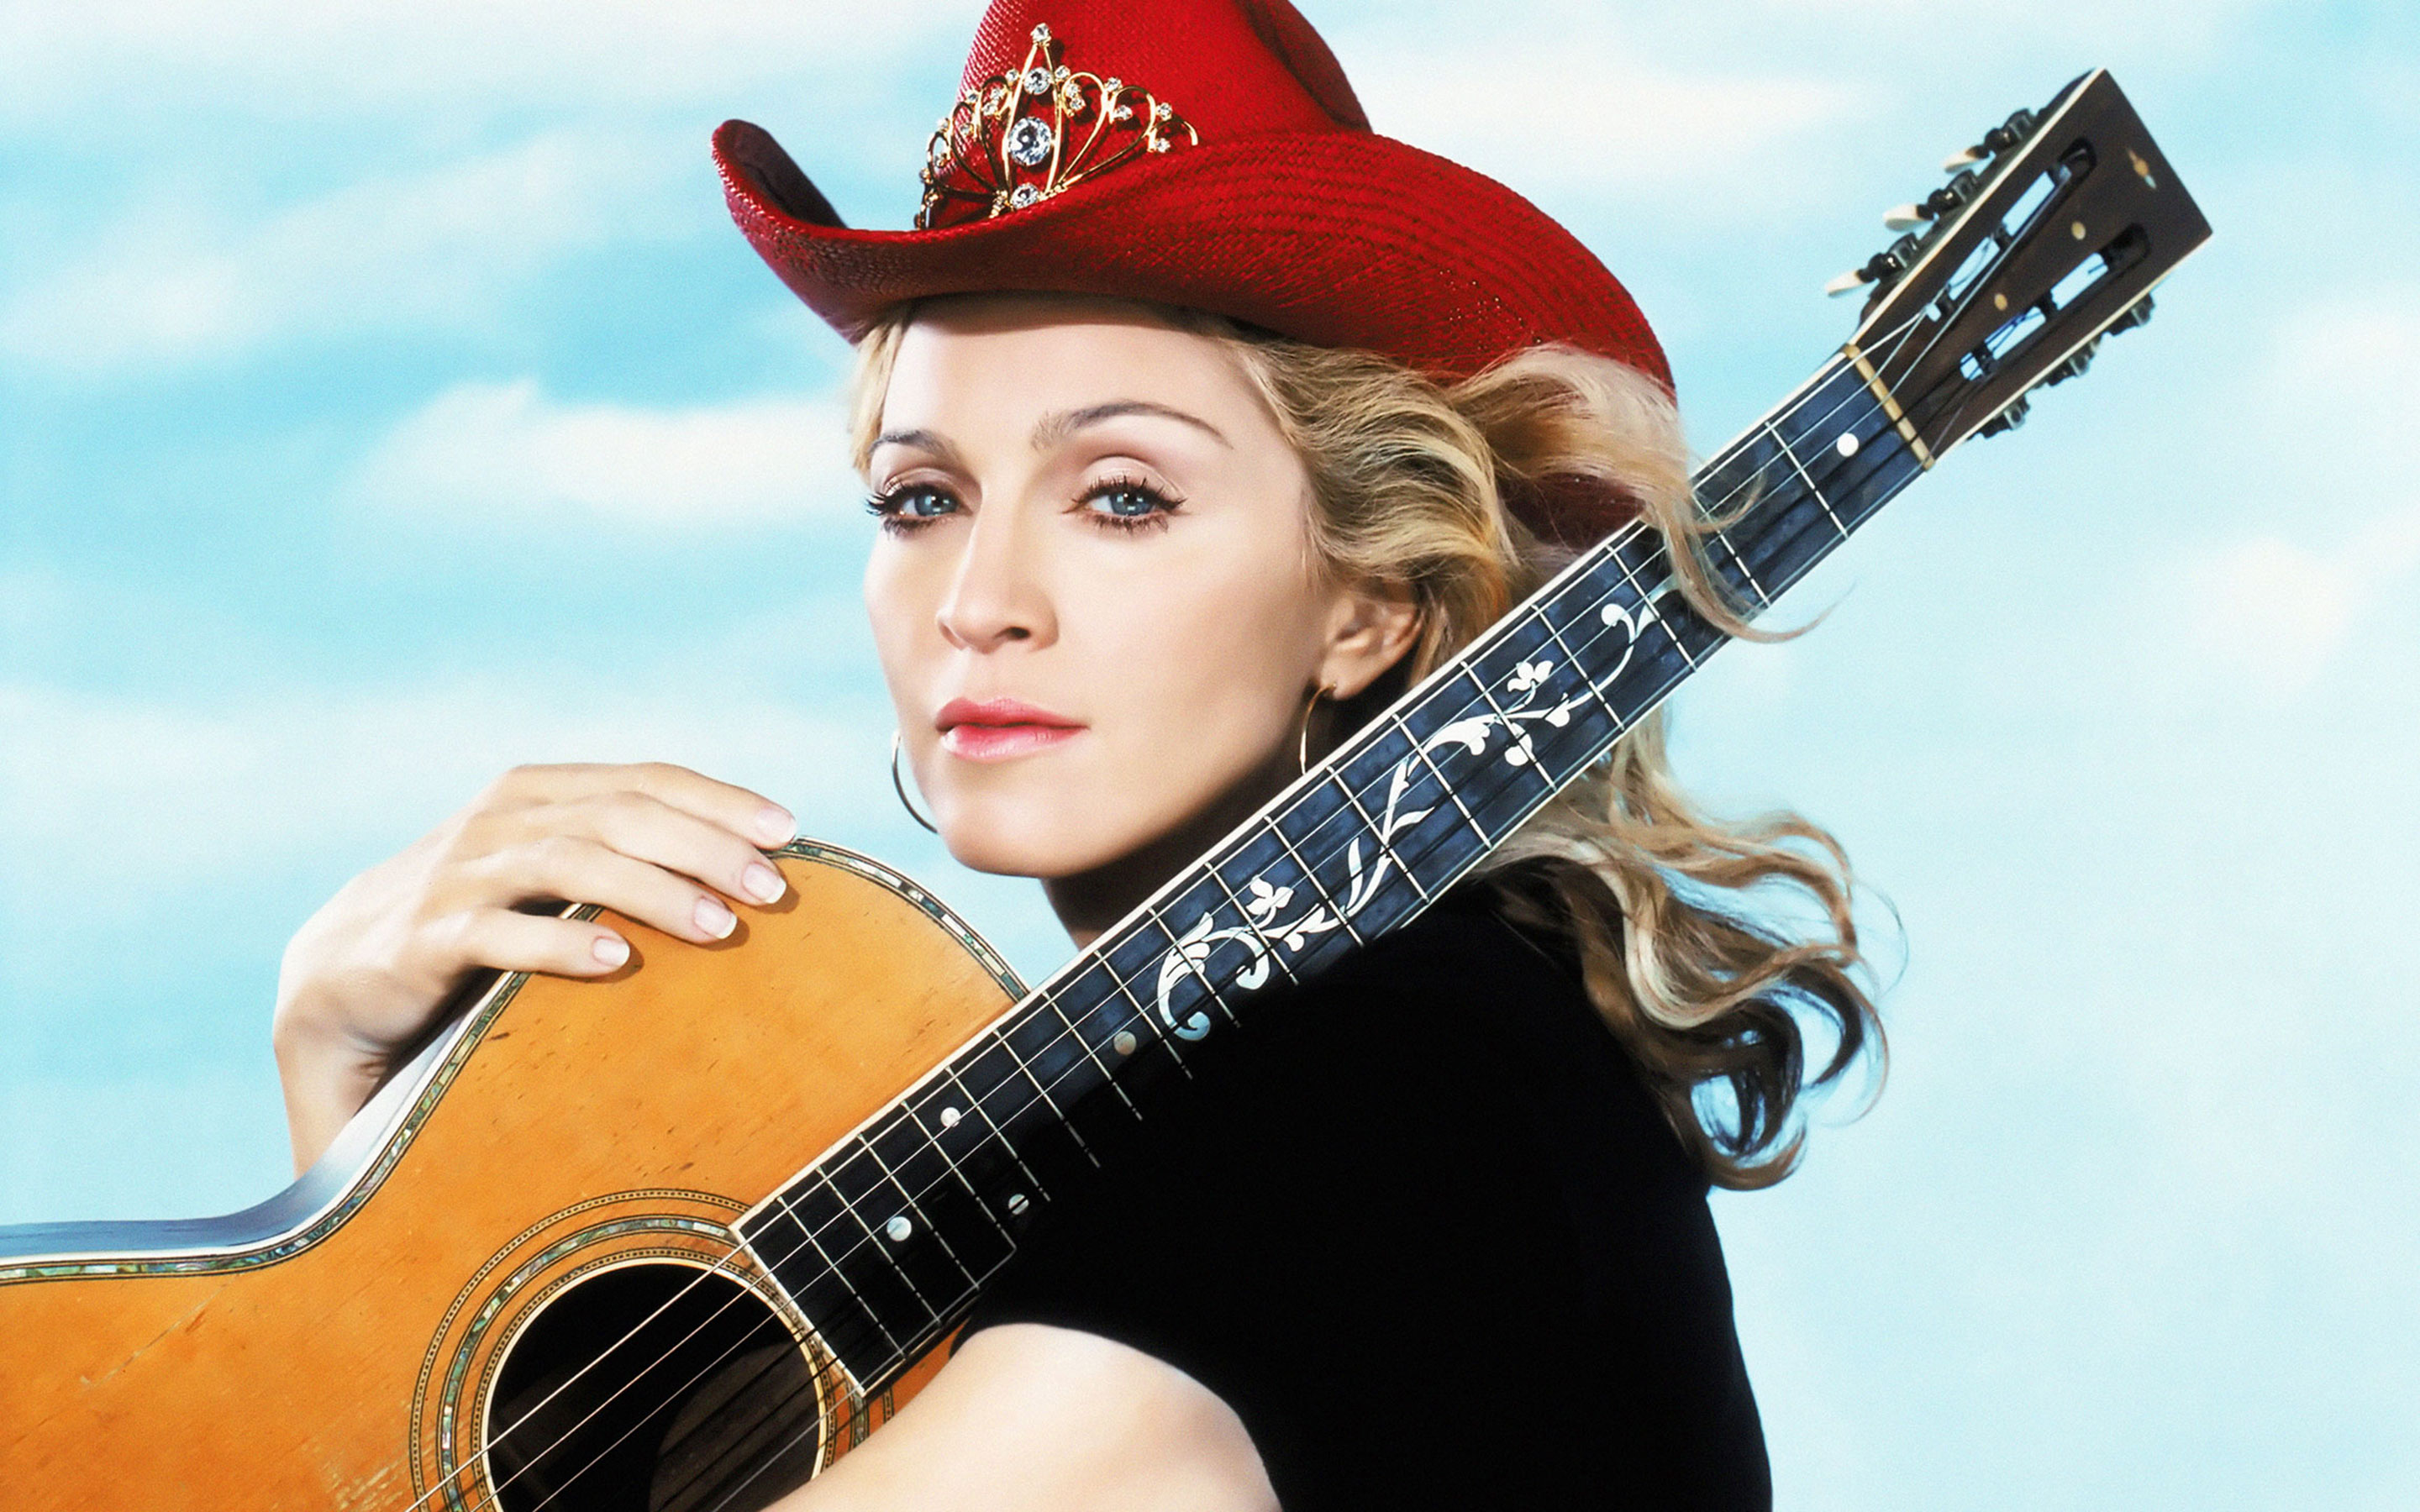 madonna-wallpaper-music-0001-notebook.jpg